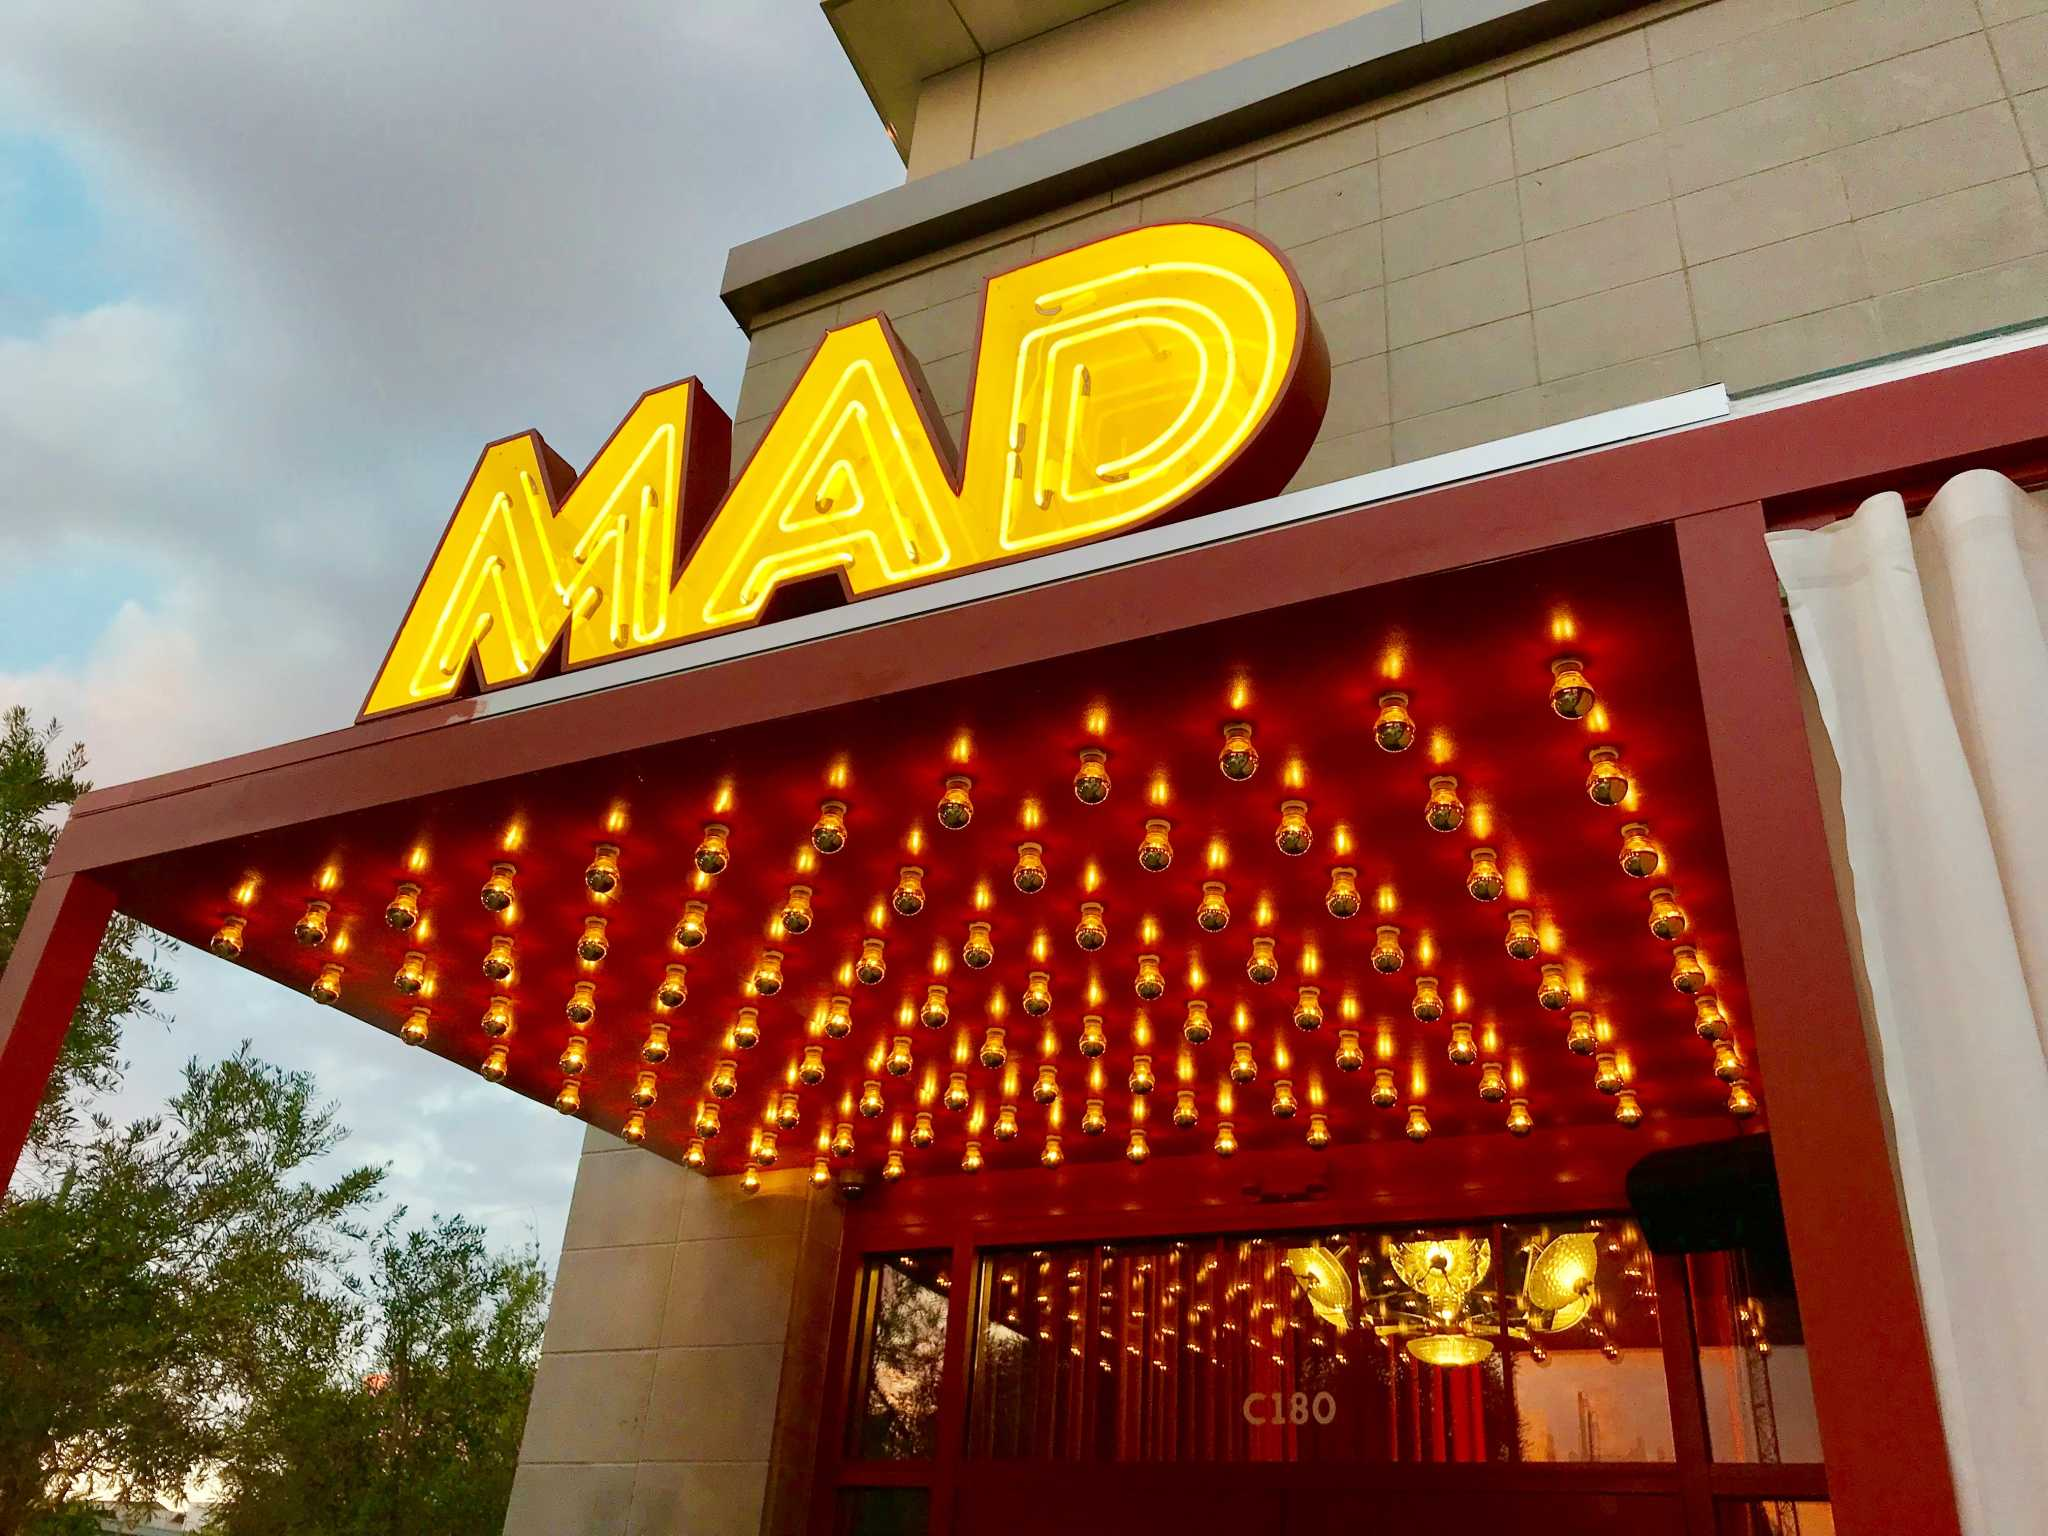 New Houston restaurant MAD among cleanest places to eat in June, according to health inspections